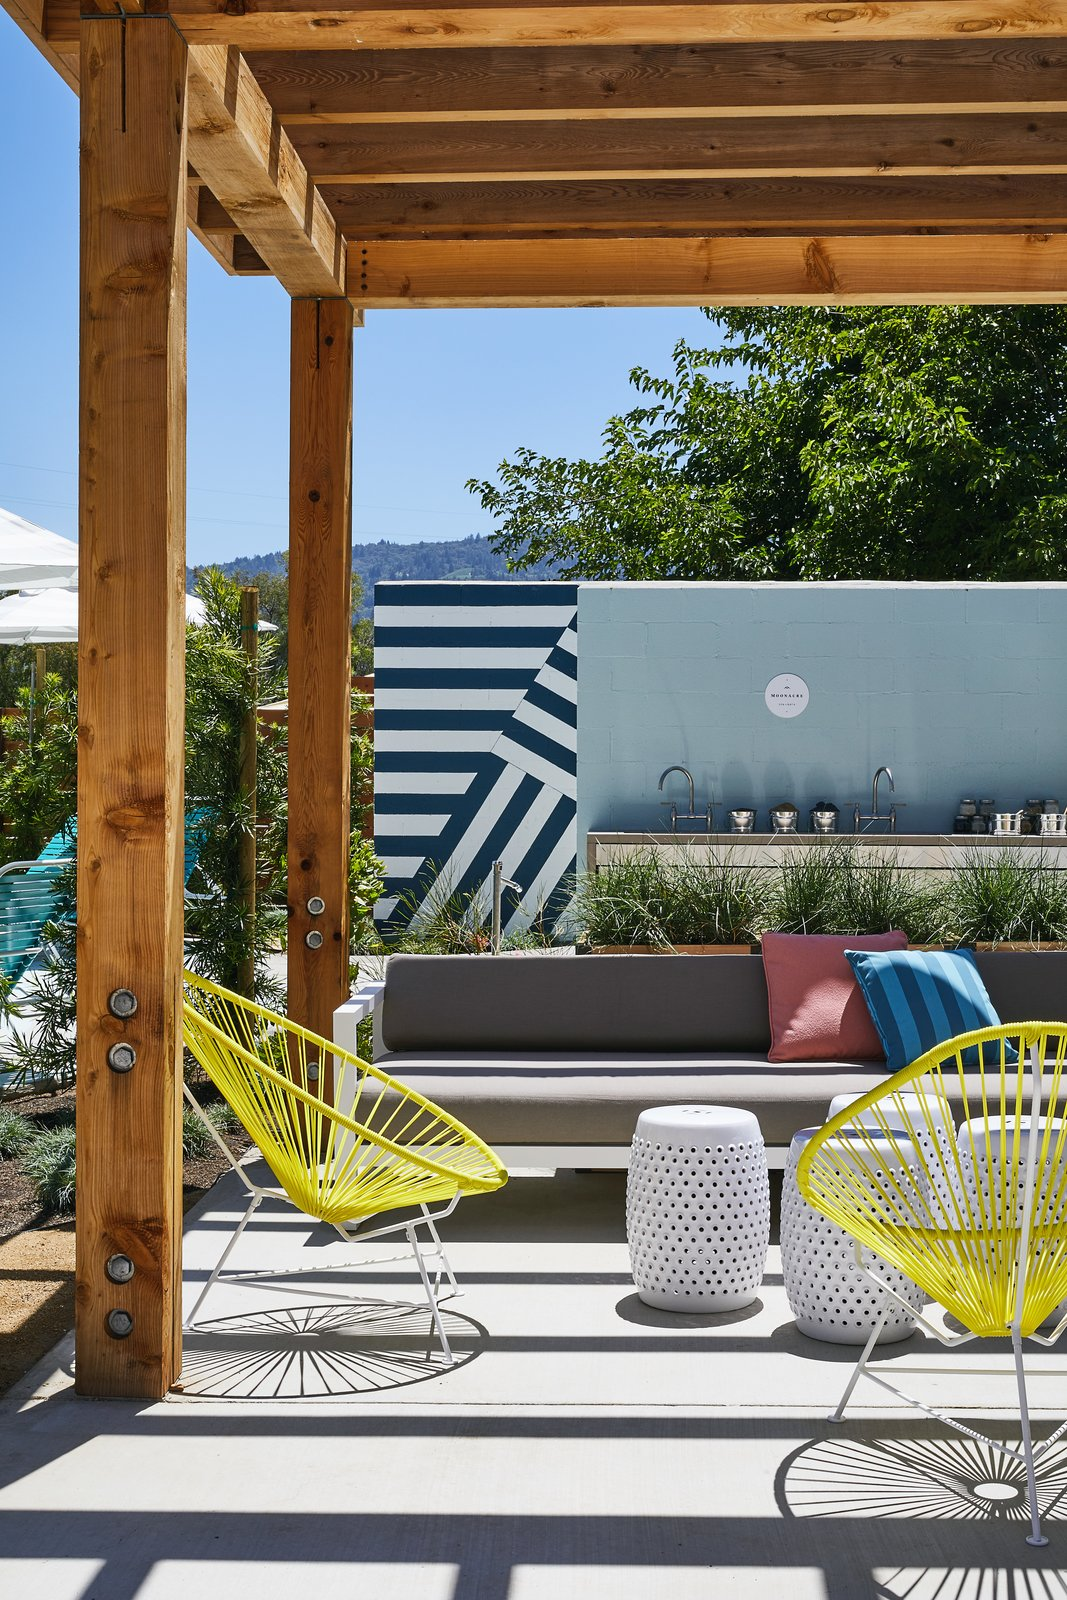 An outdoor relaxation area also offers a Tagged: Outdoor and Concrete Patio, Porch, Deck. A Napa Valley Motor Lodge Reinterprets the Classic Roadside Motel - Photo 8 of 9